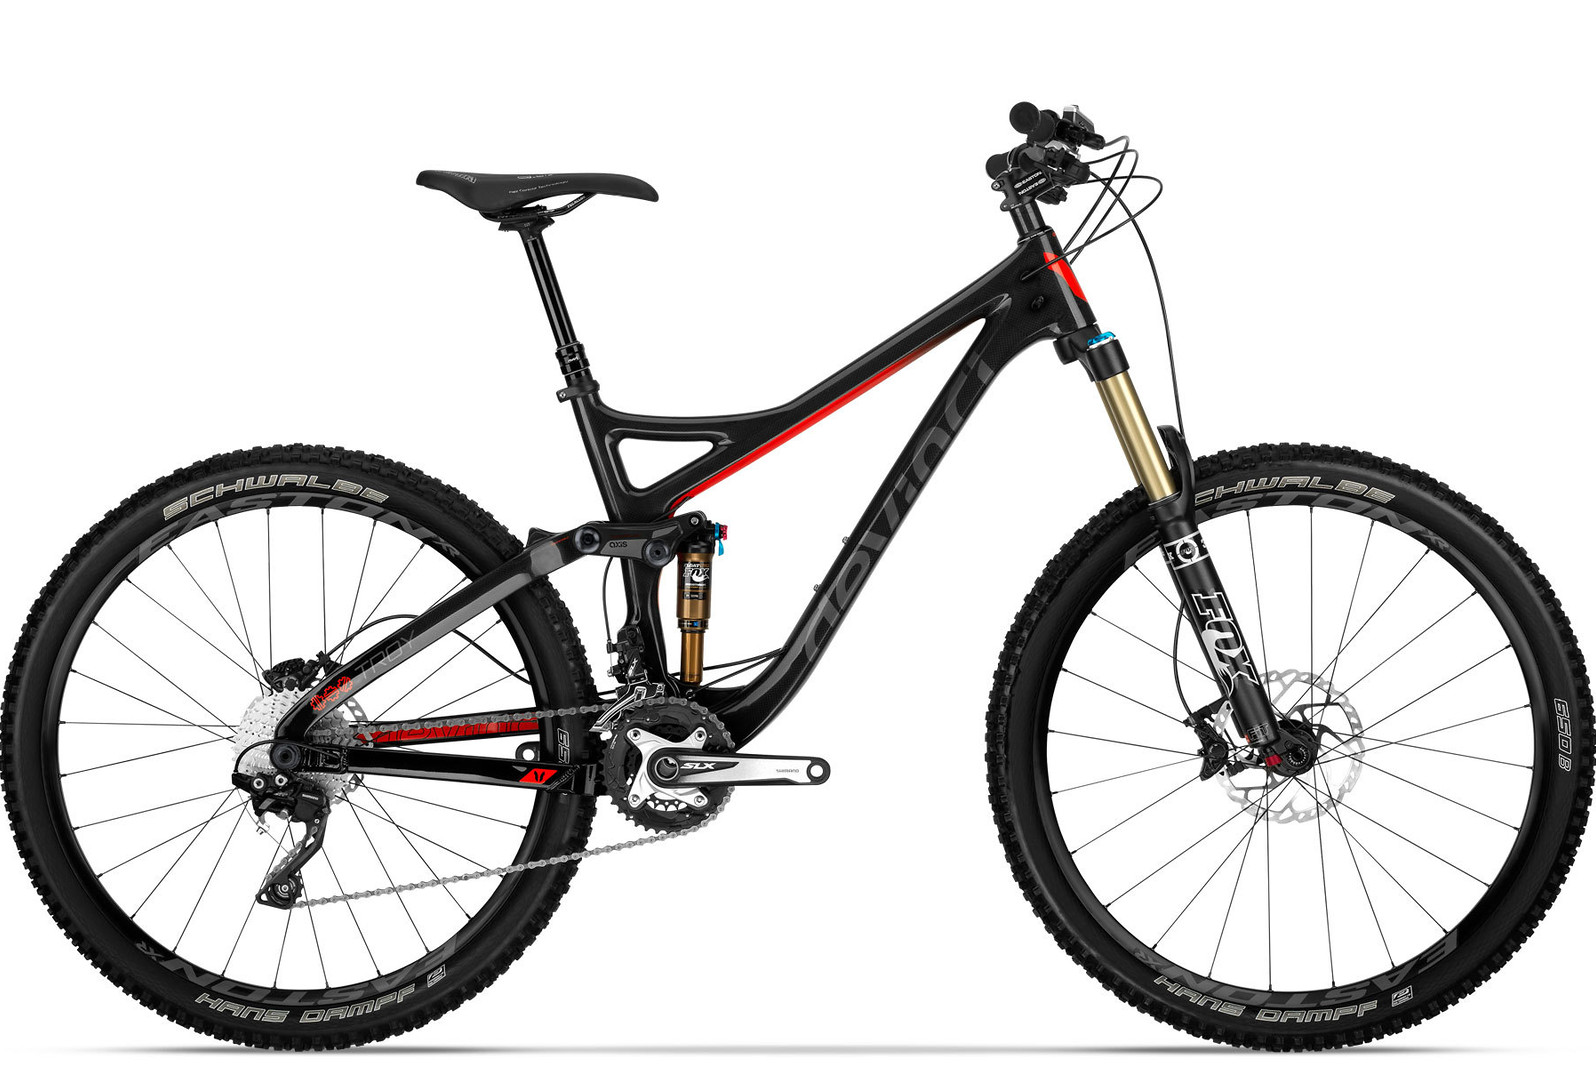 2014 Devinci Troy Carbon RC Bike 2014 Troy Carbon RC